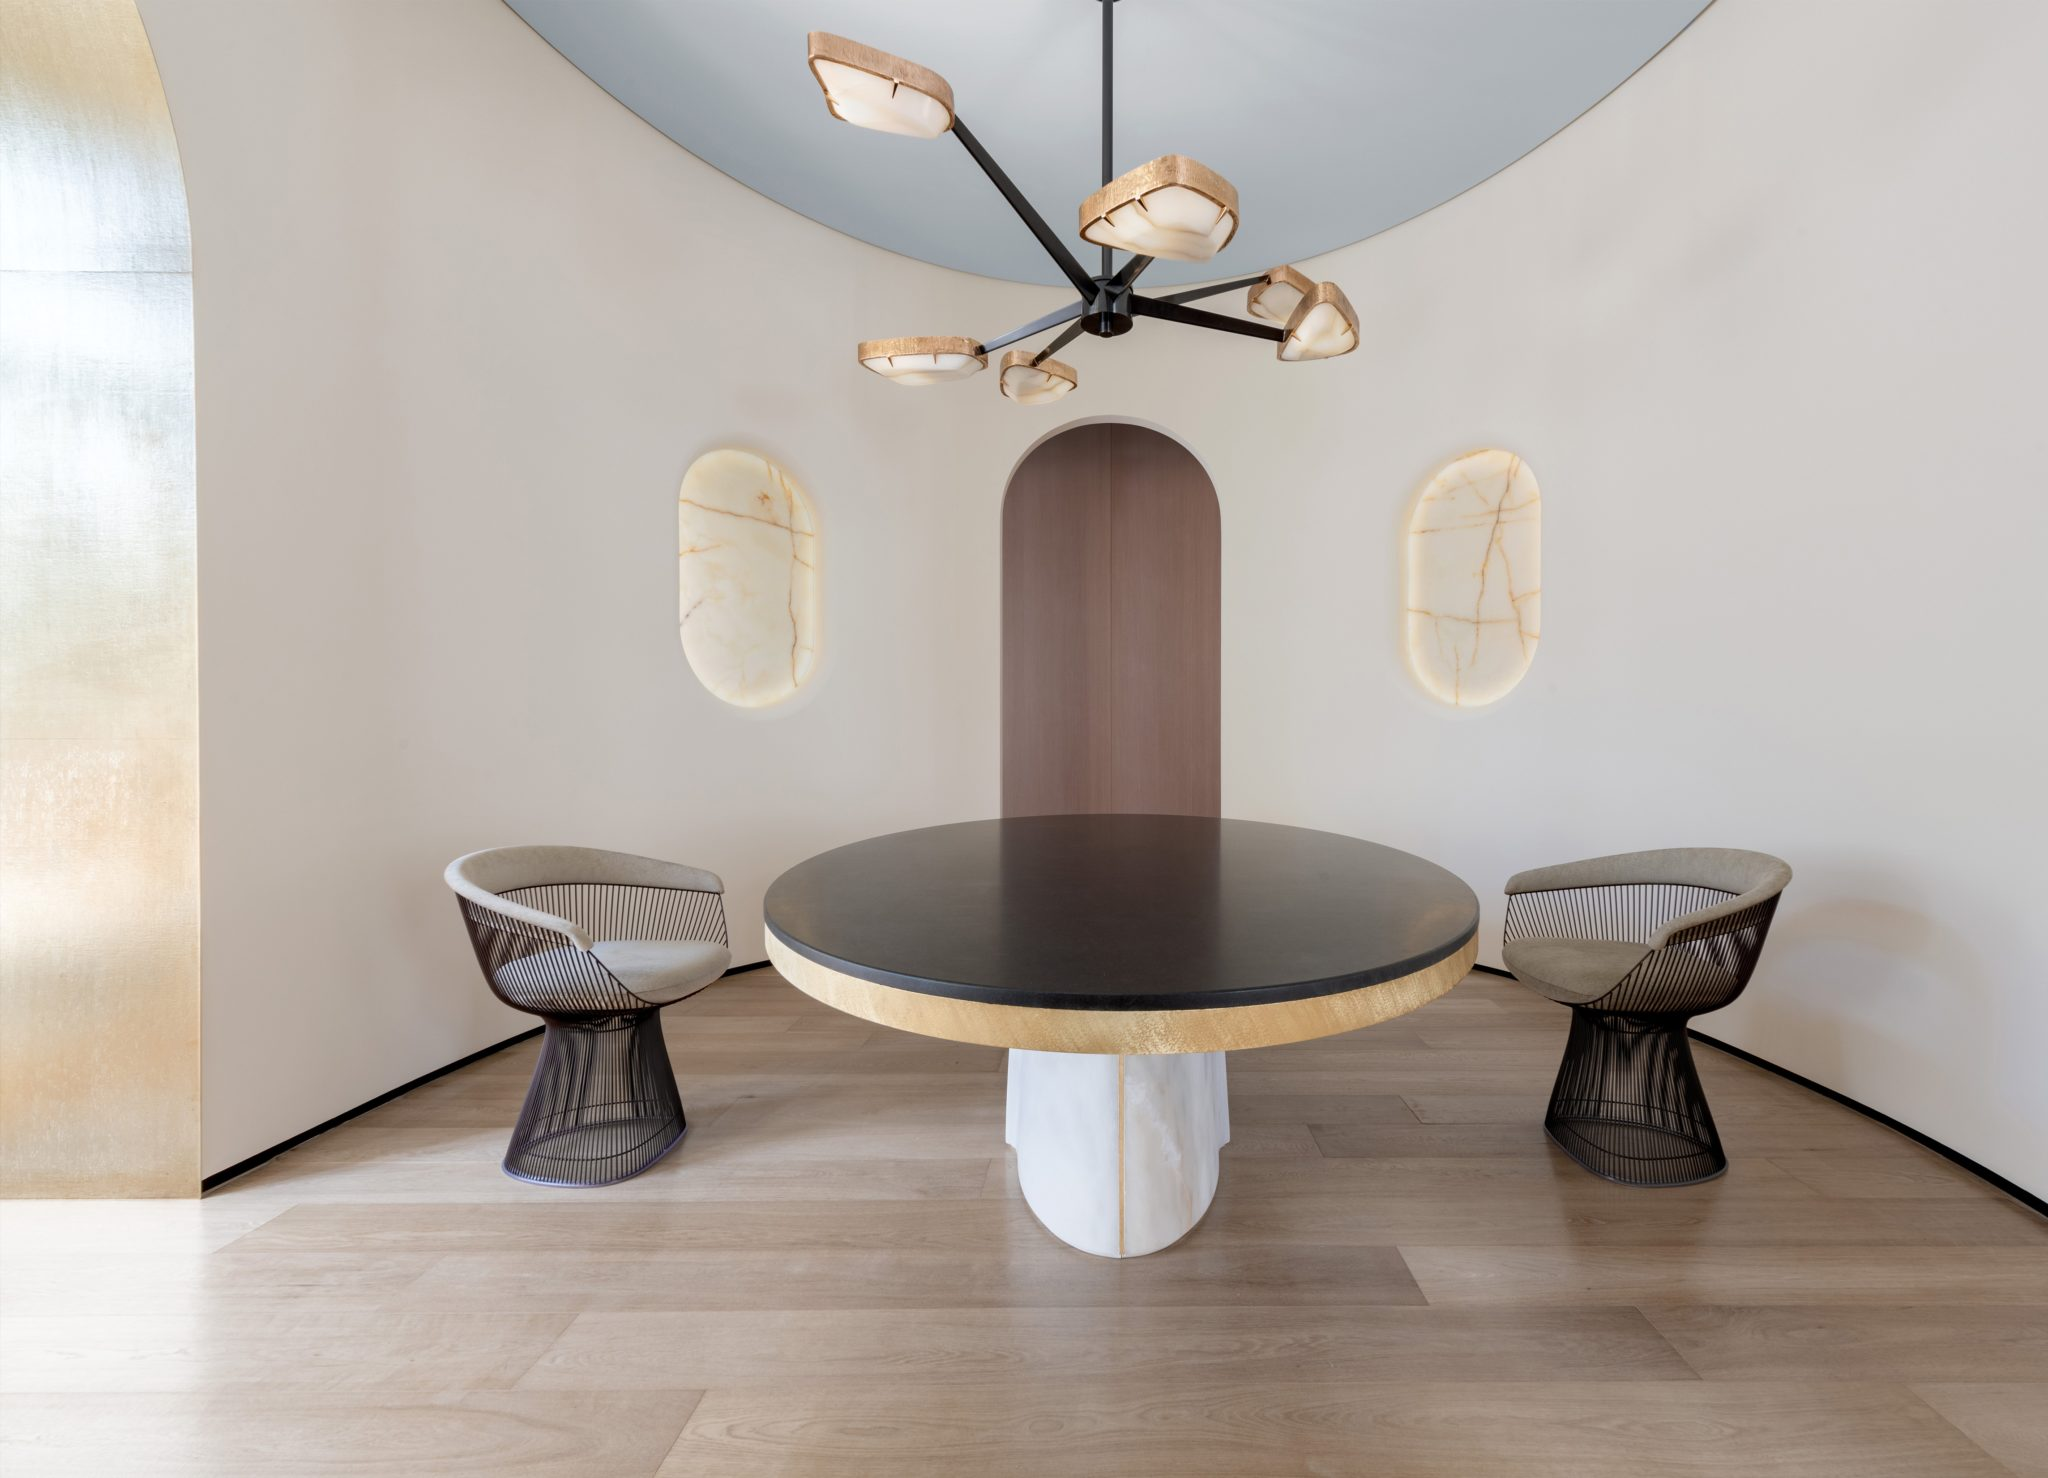 An oval dining room in Rome features vintage Warren Platner dining chairs arounda custom table, a black-lacquered Spider chandelier, and recessed onyx wall lights; the archways arelined in bronze toadd subtleglamour.